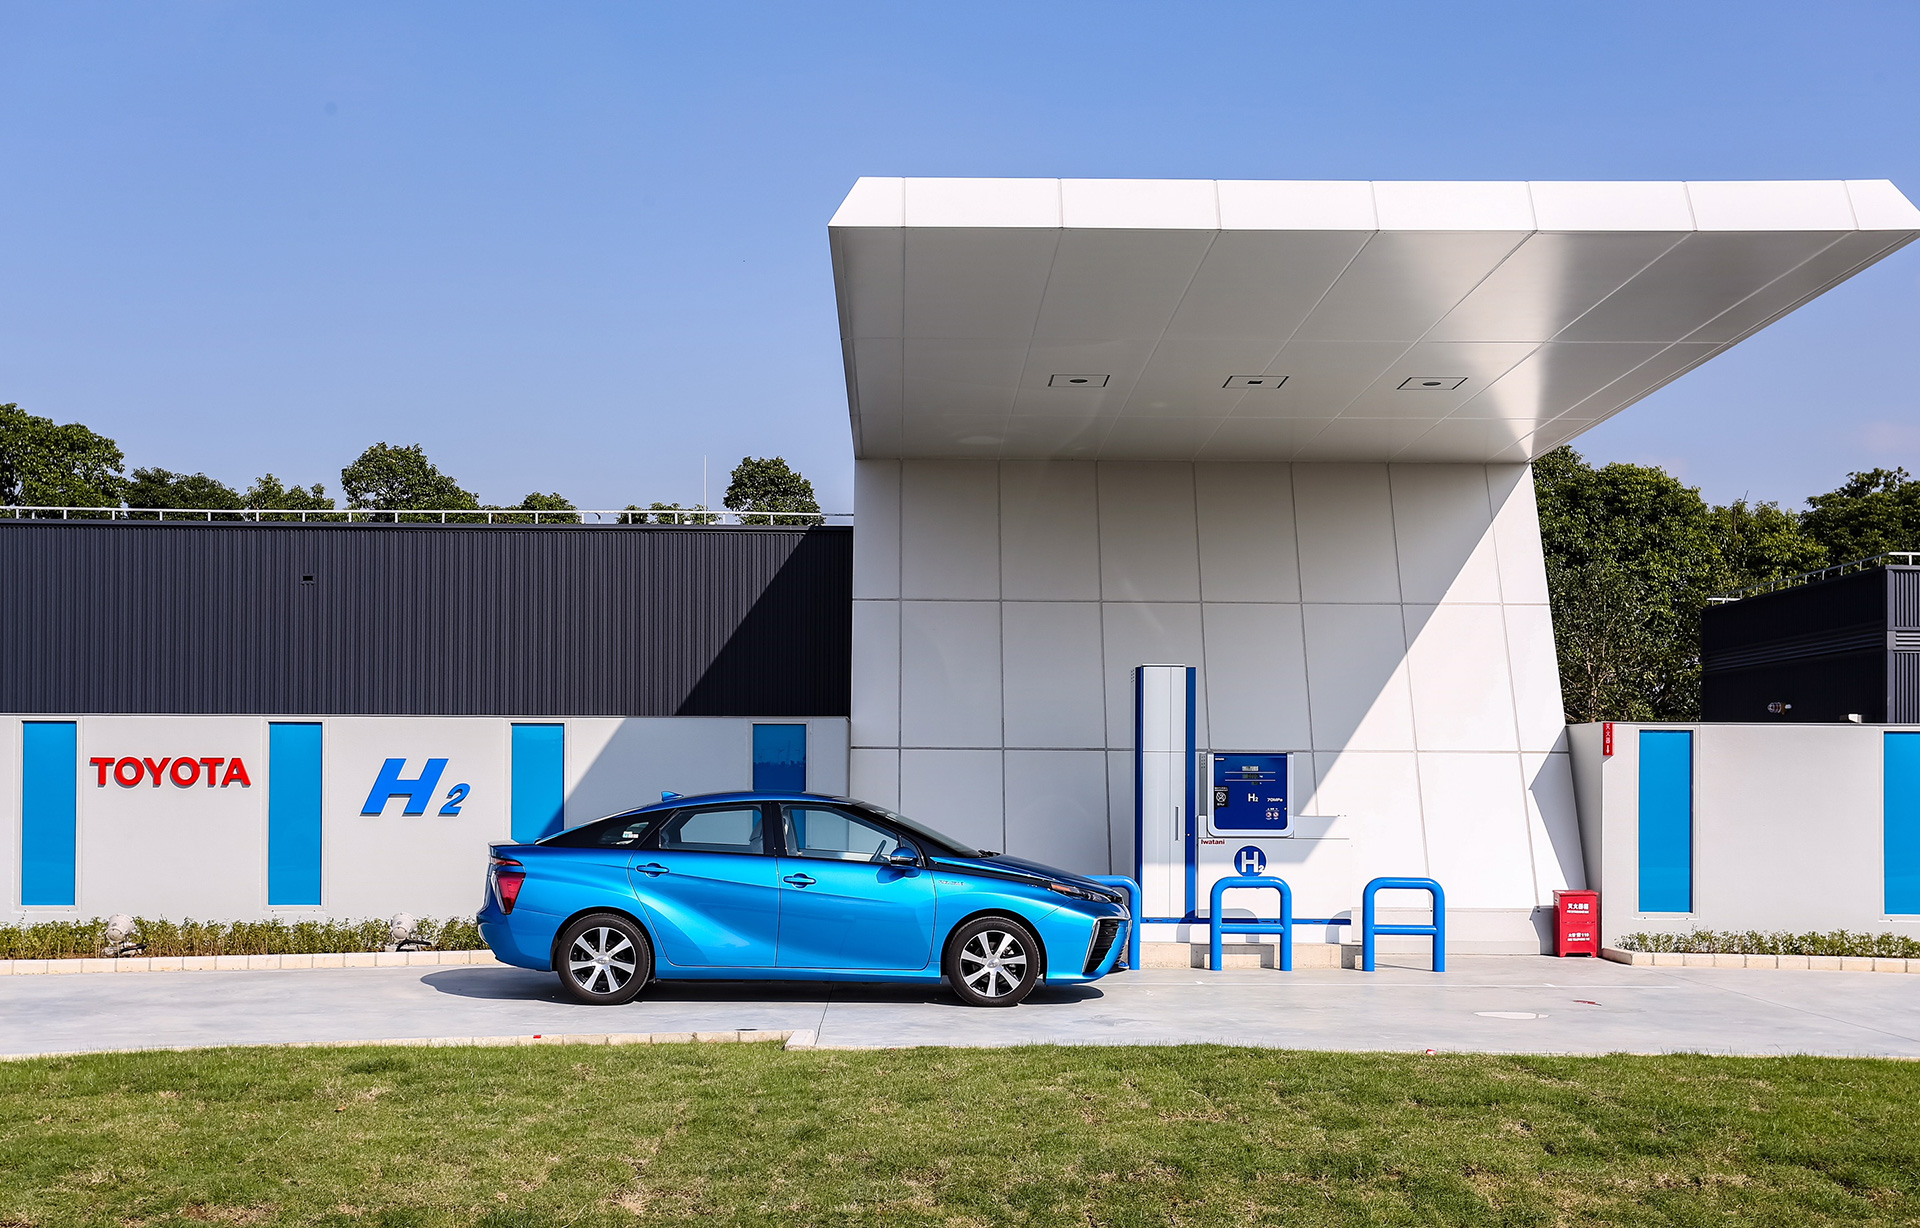 Hydrogen filling station for Toyota in Guangzhou China